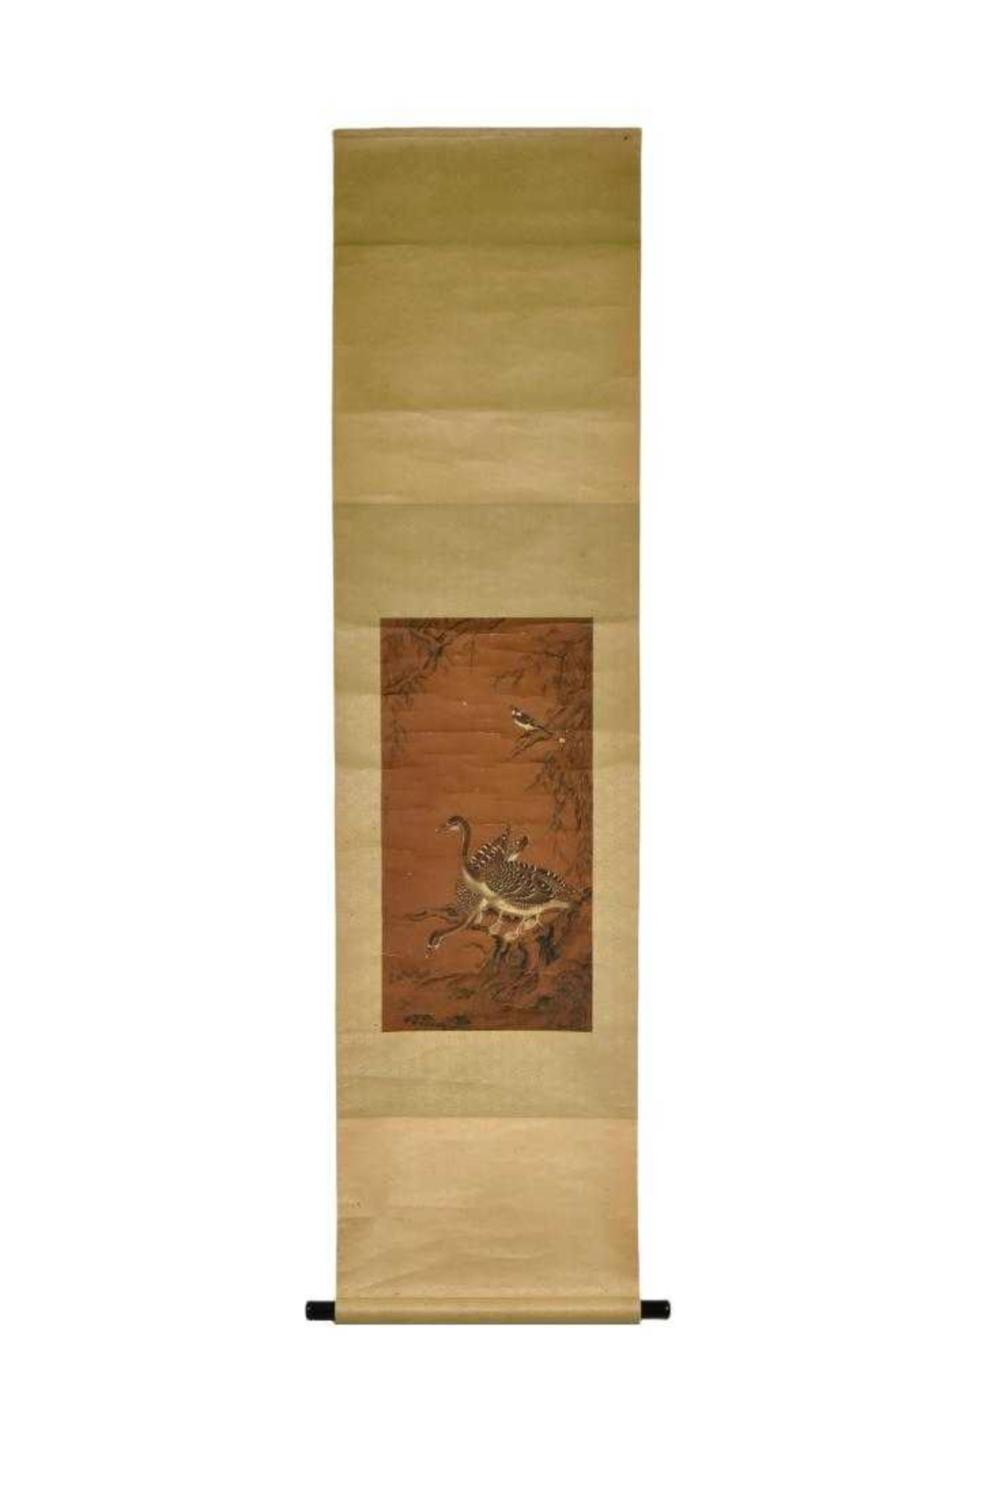 QING CHINESE SILK PAINTING SCROLL OF DUCKS & BIRD